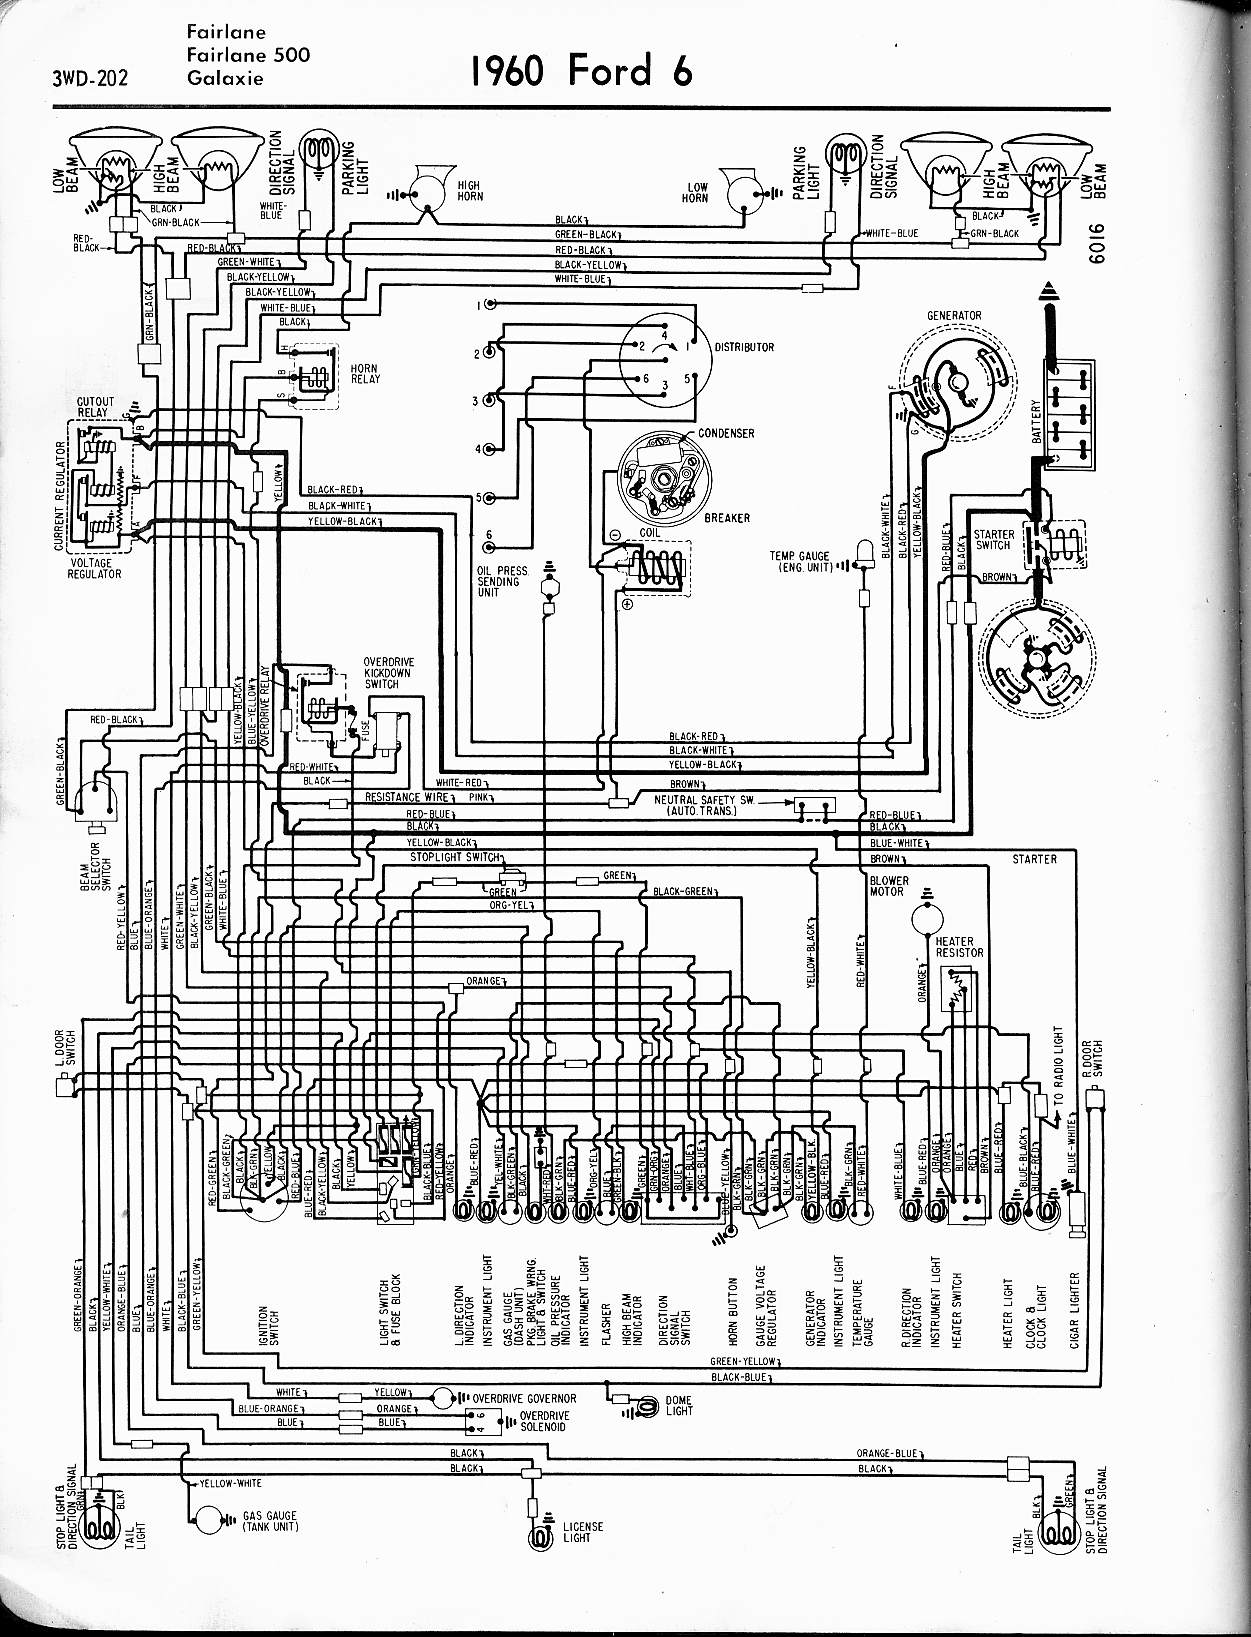 Surprising 1957 Dodge Wiring Diagram Basic Electronics Wiring Diagram Wiring Cloud Domeilariaidewilluminateatxorg